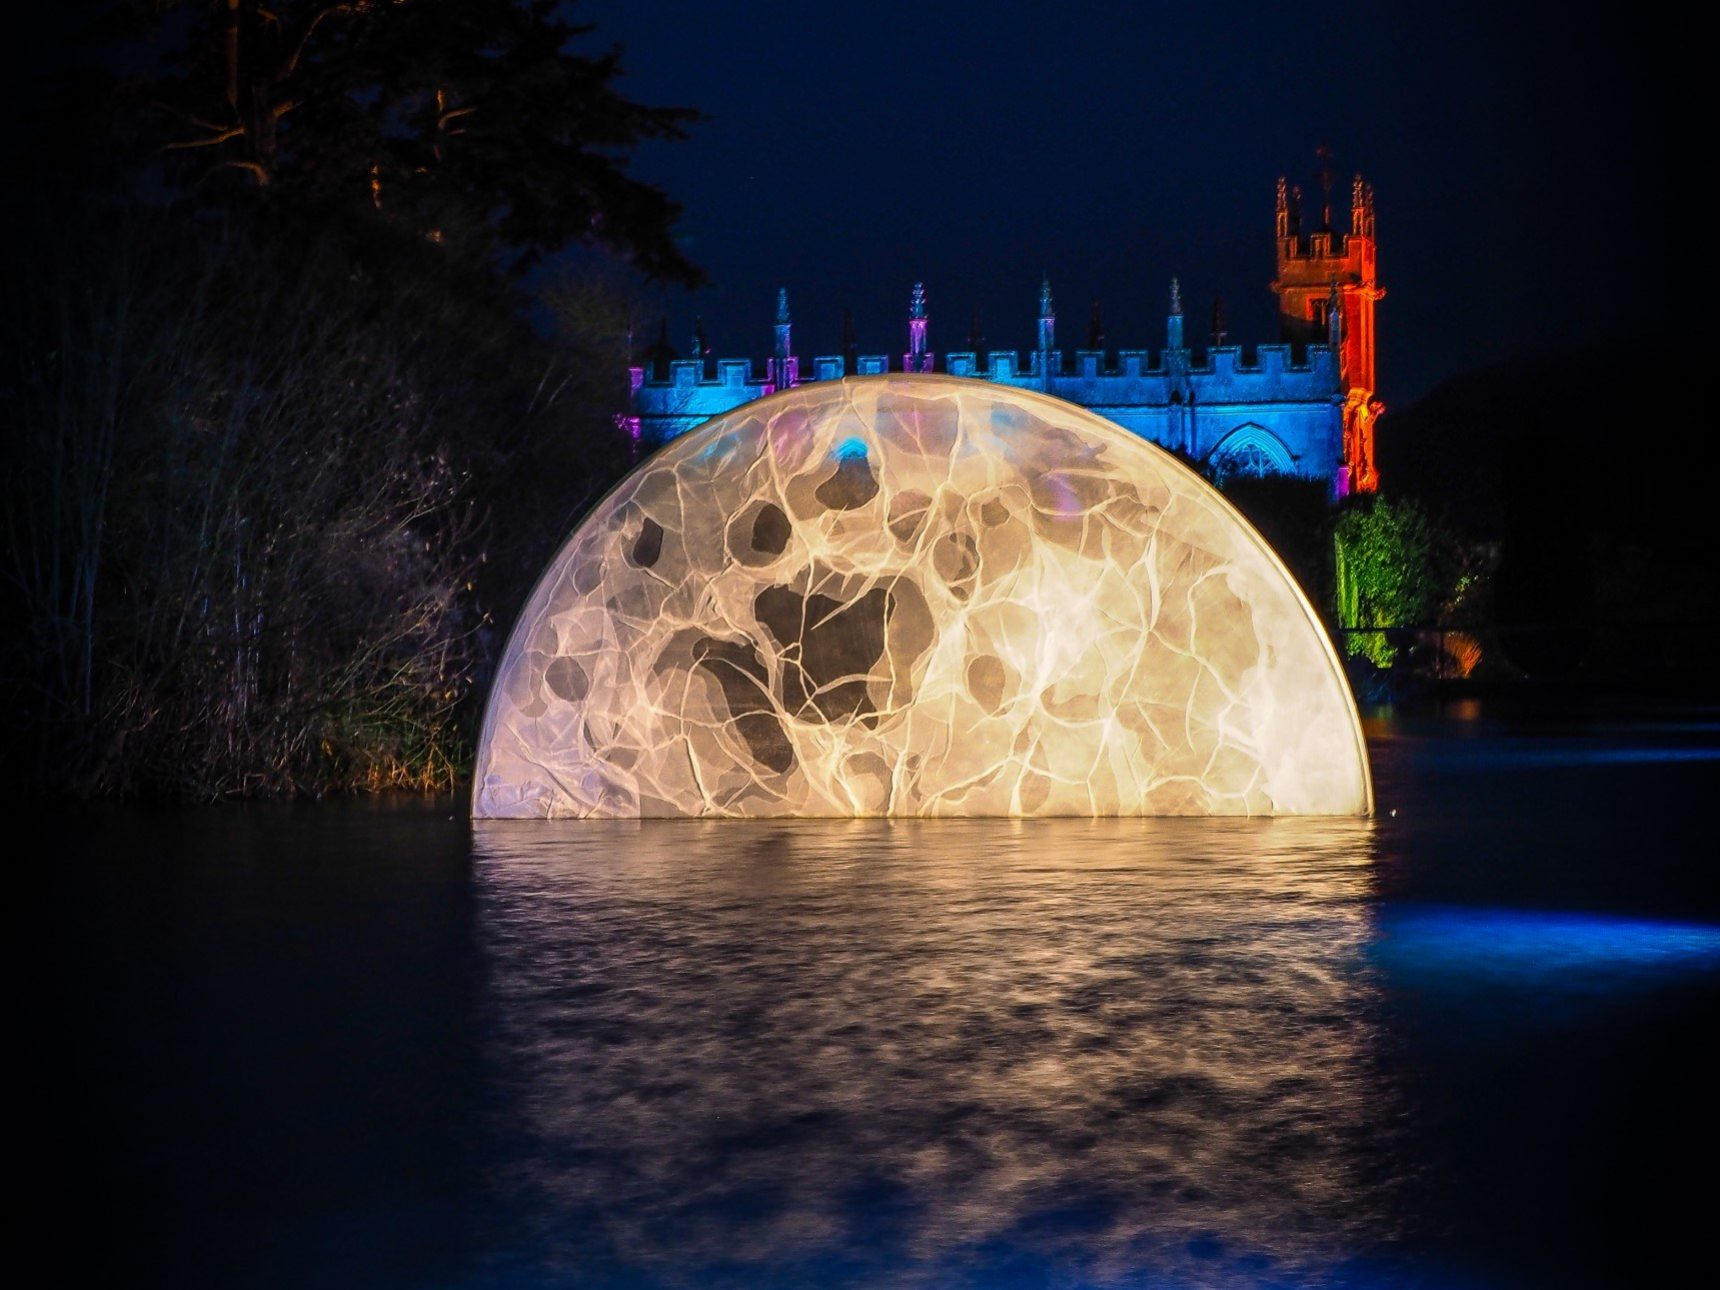 Moon illumination at Sudeley Castle Spectacle of Light